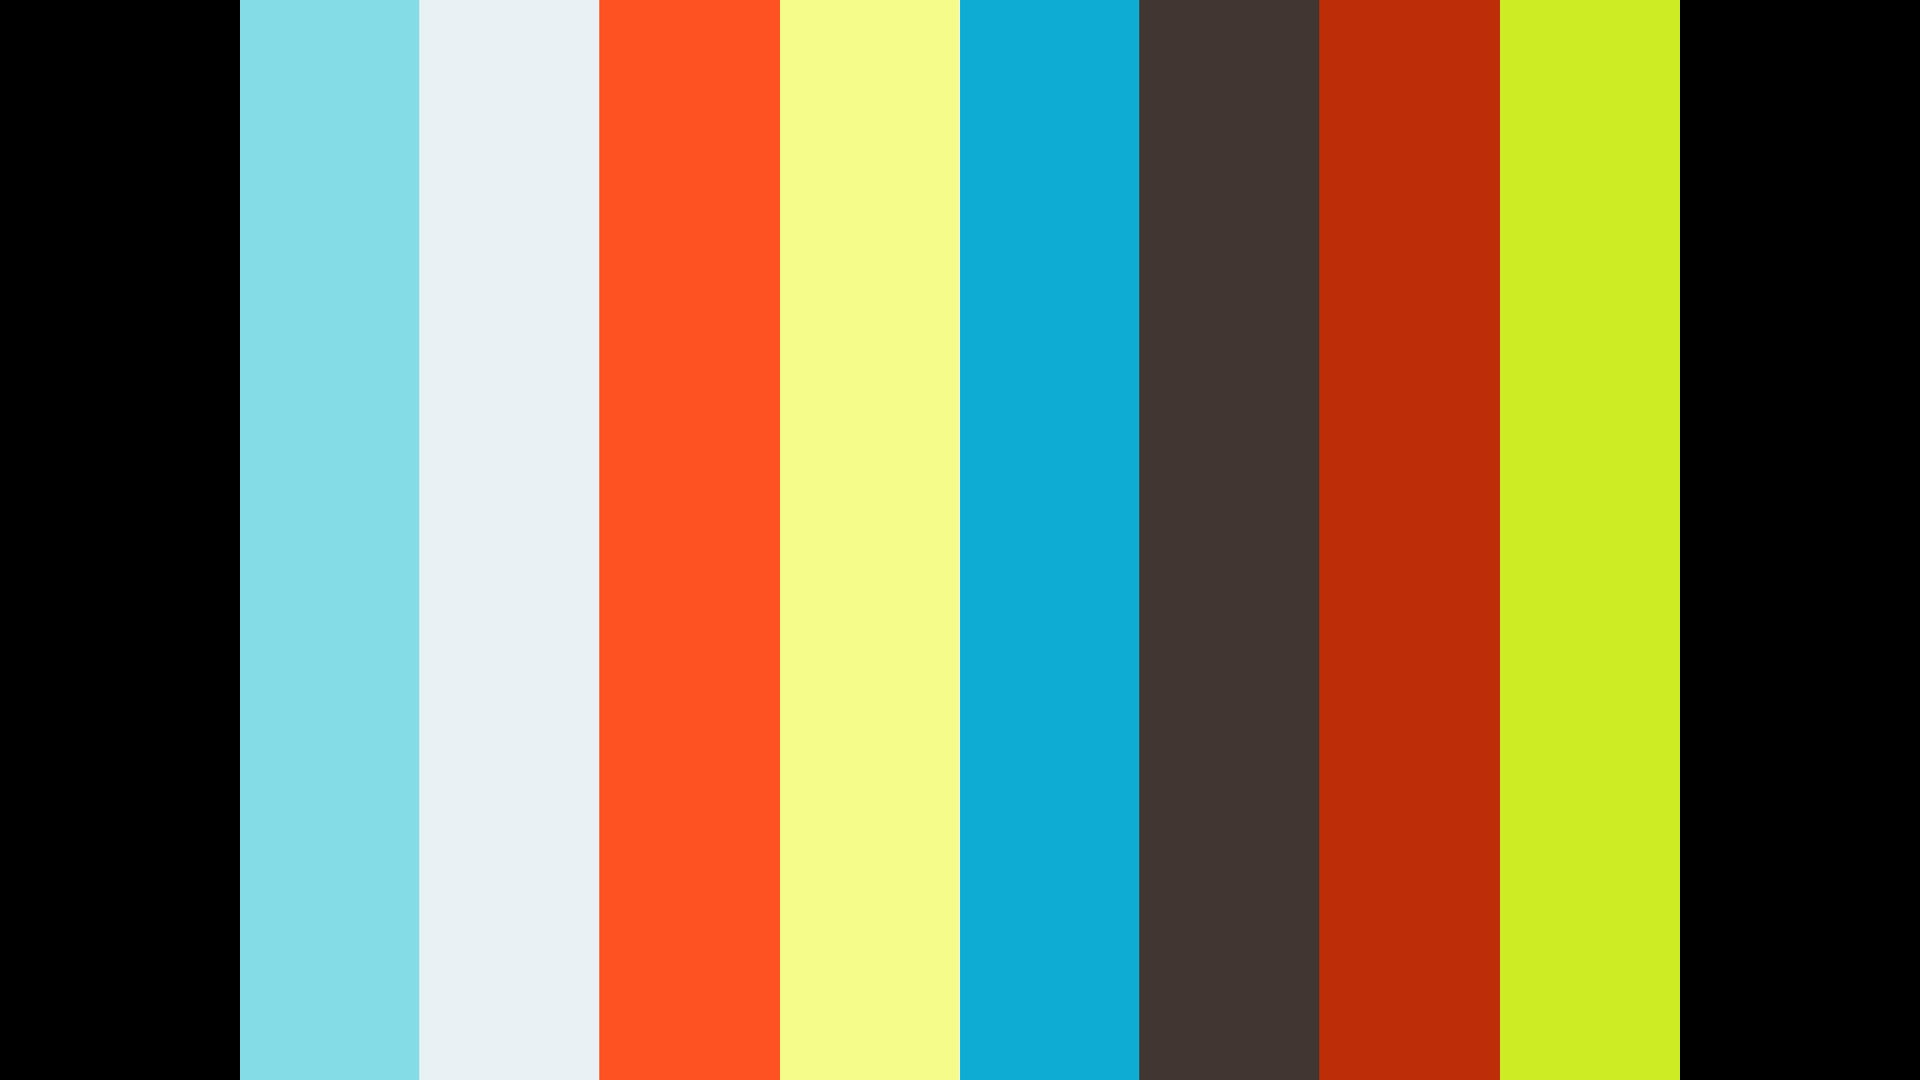 The Stock Market in 2016 - May 2, 2016 - Version 2